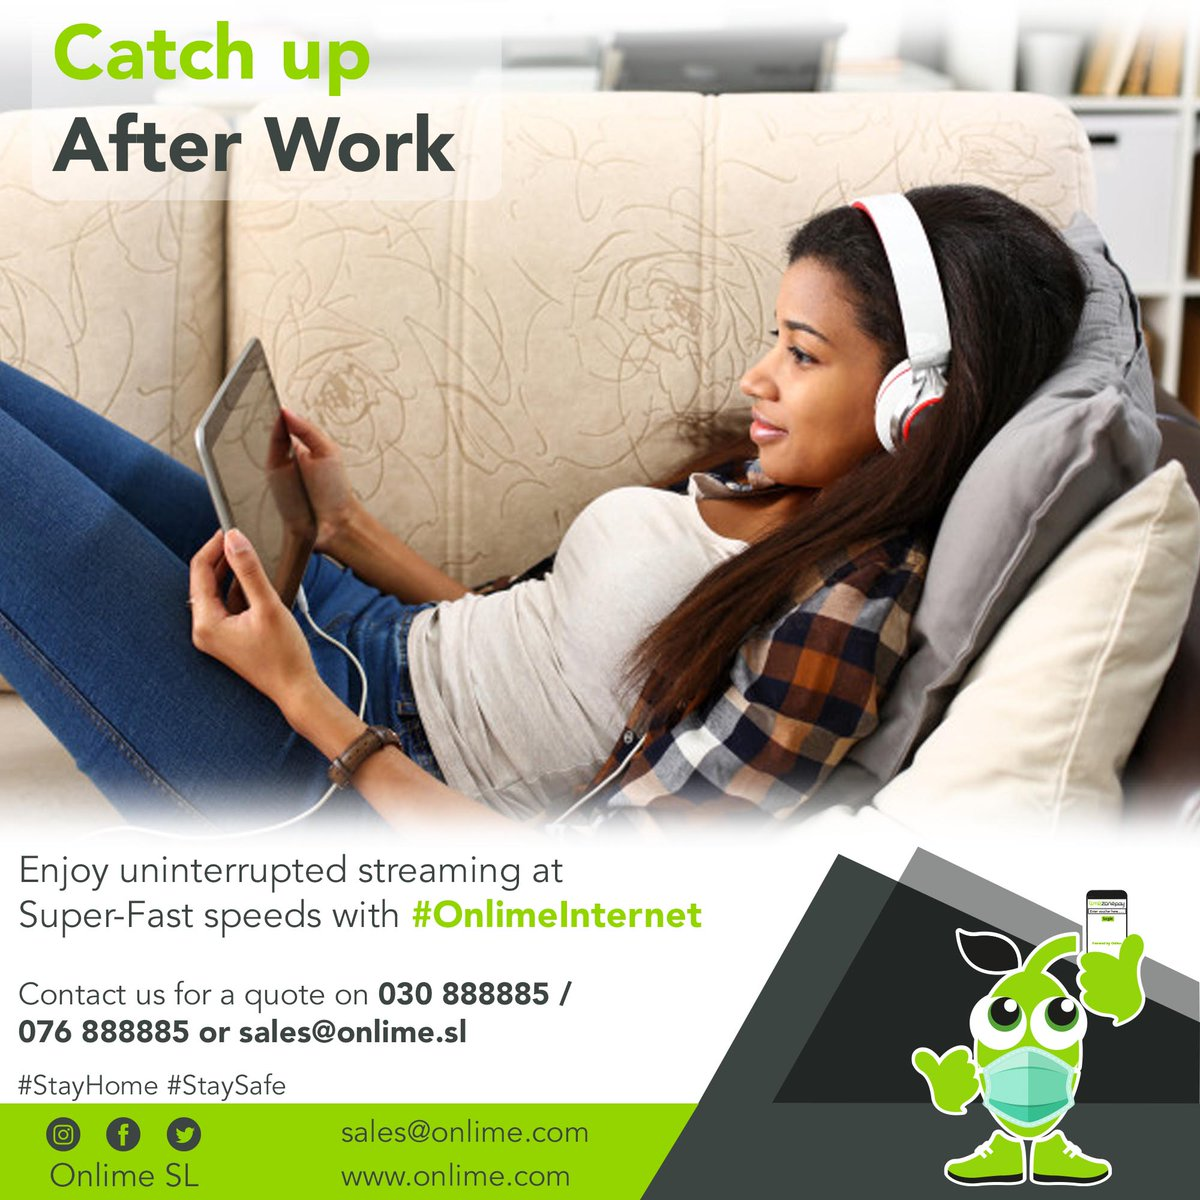 If you are an employee, you will probably need internet to catch up with your favourite shows online after work. Enjoy uninterrupted streaming at Super-Fast Speeds with #OnlimeInternet Call 076 888885 /030 888885 or email sales@onlime.sl for more info.#SierraLeone  #SaloneTwitter https://t.co/nl91uUuiPe